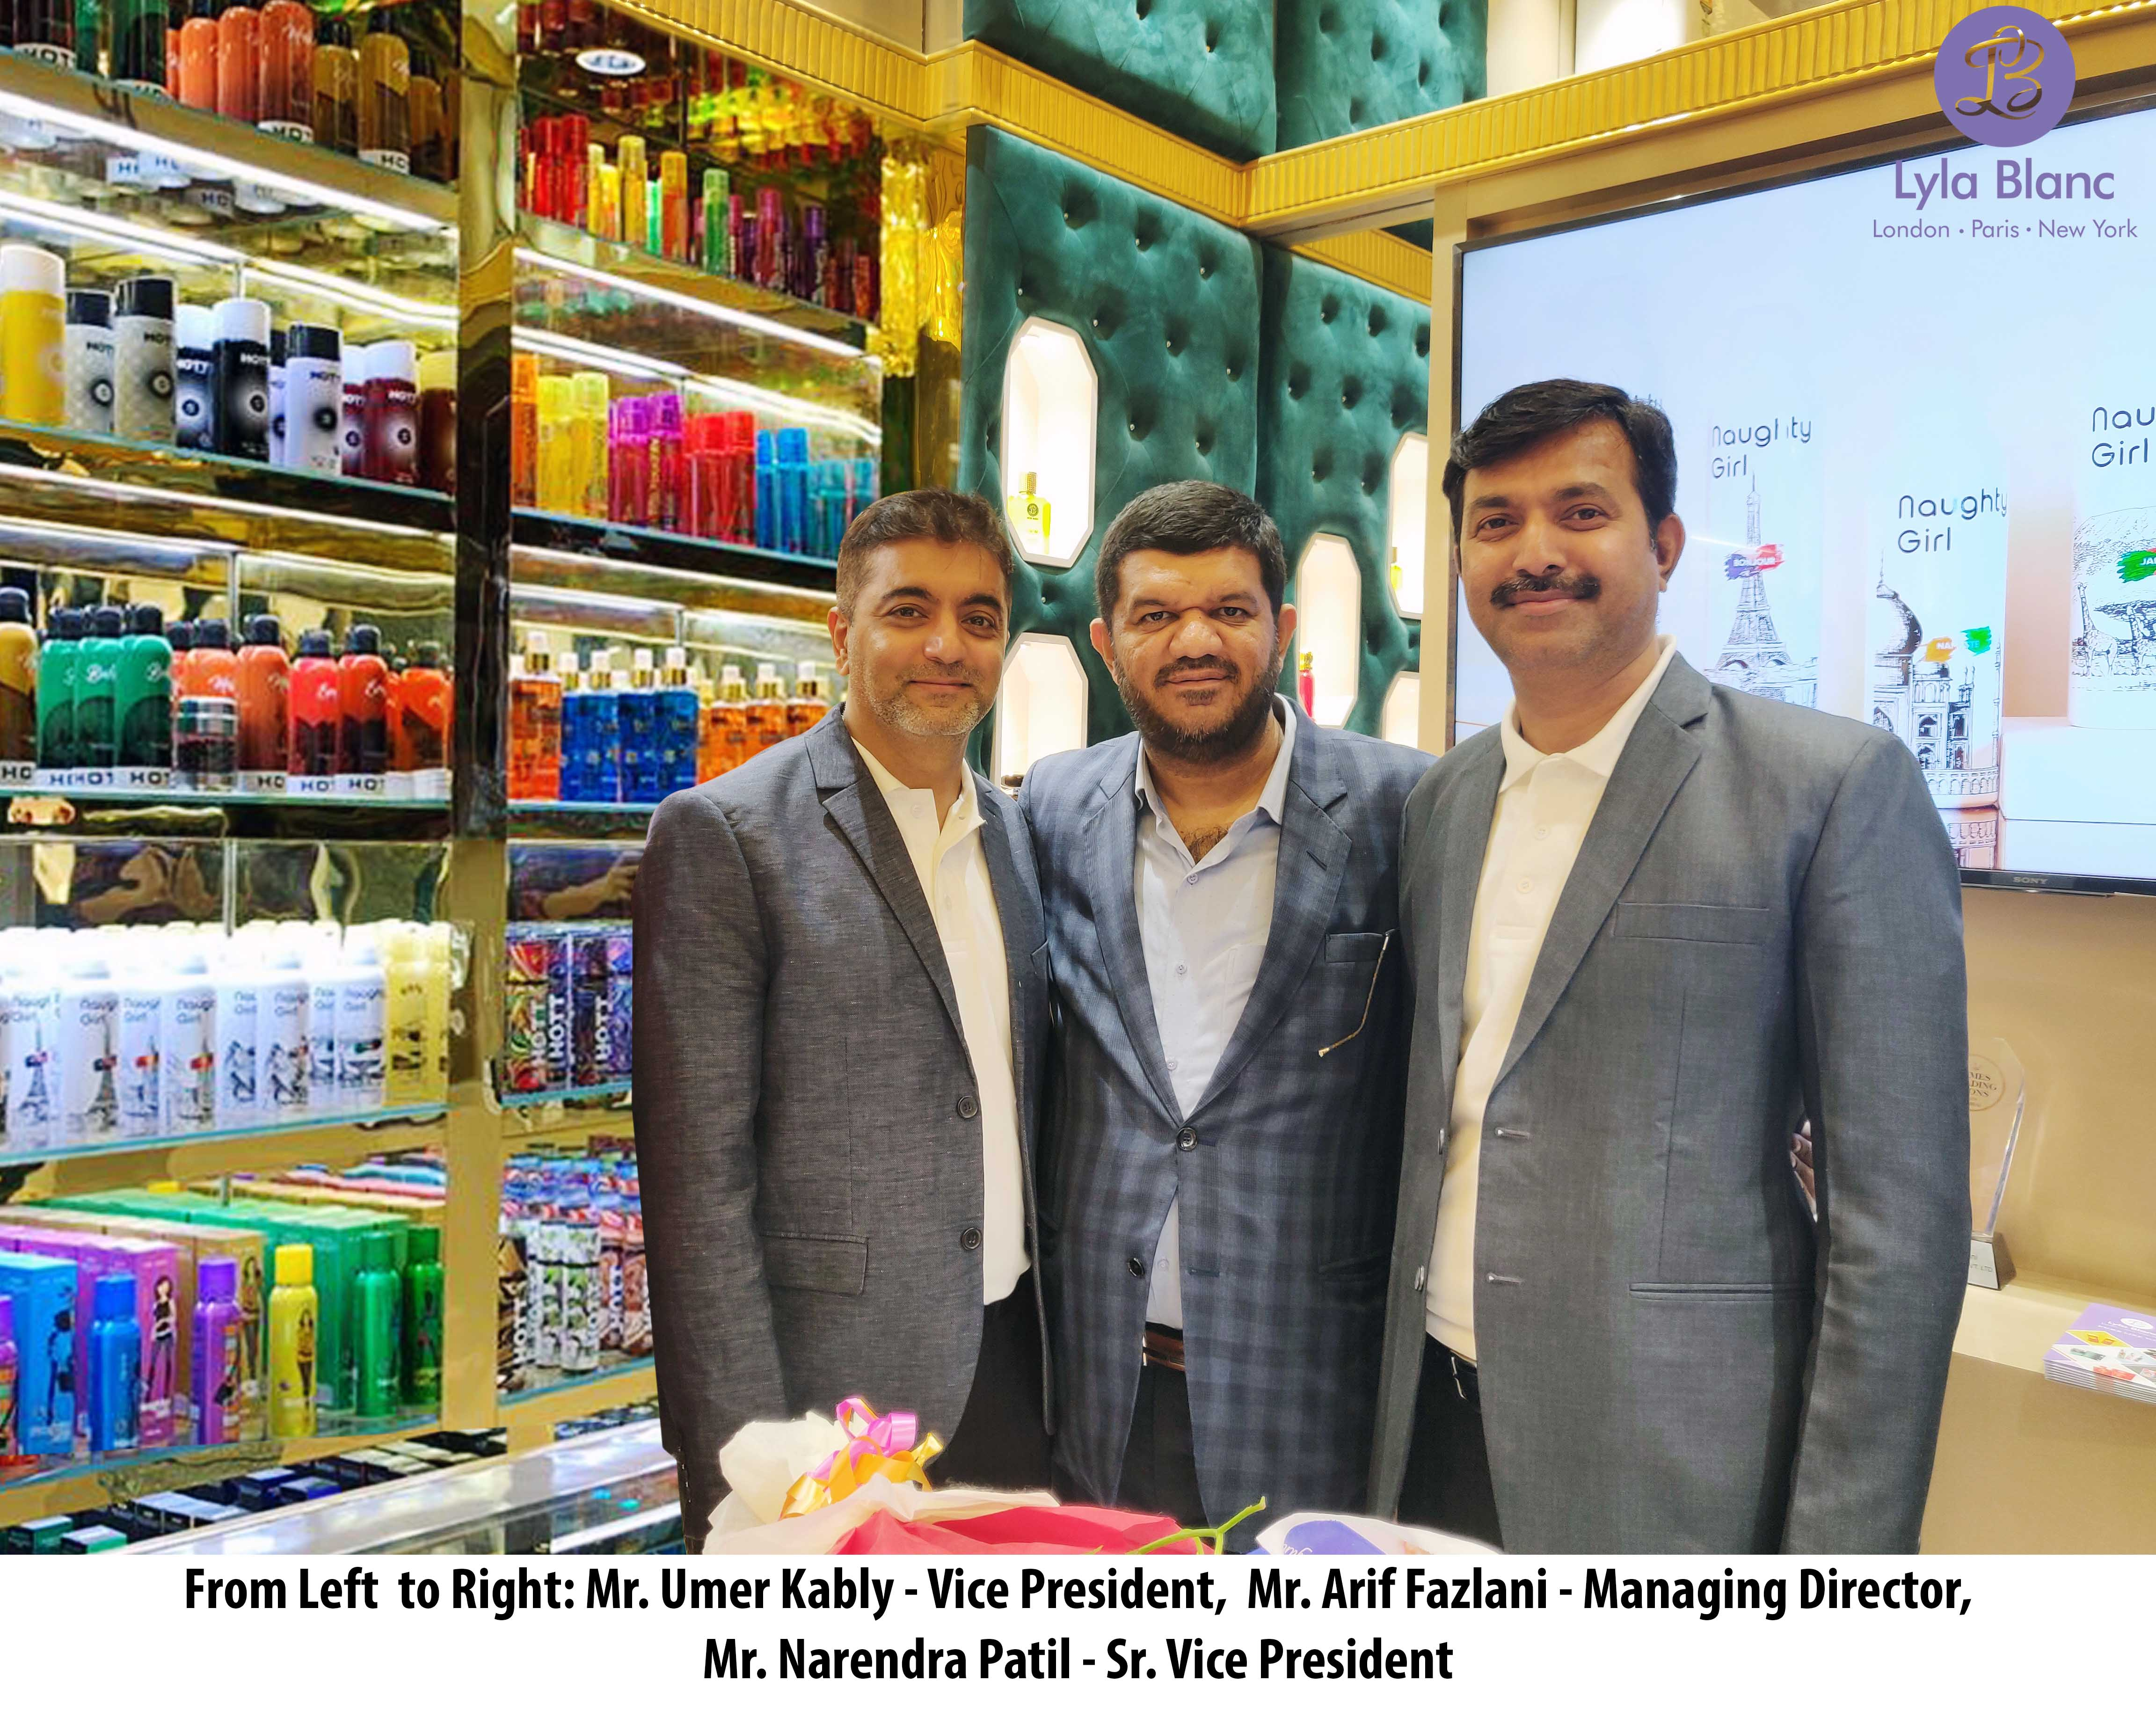 Lyla Blanc perfume launches first store in India with 300 exclusive products